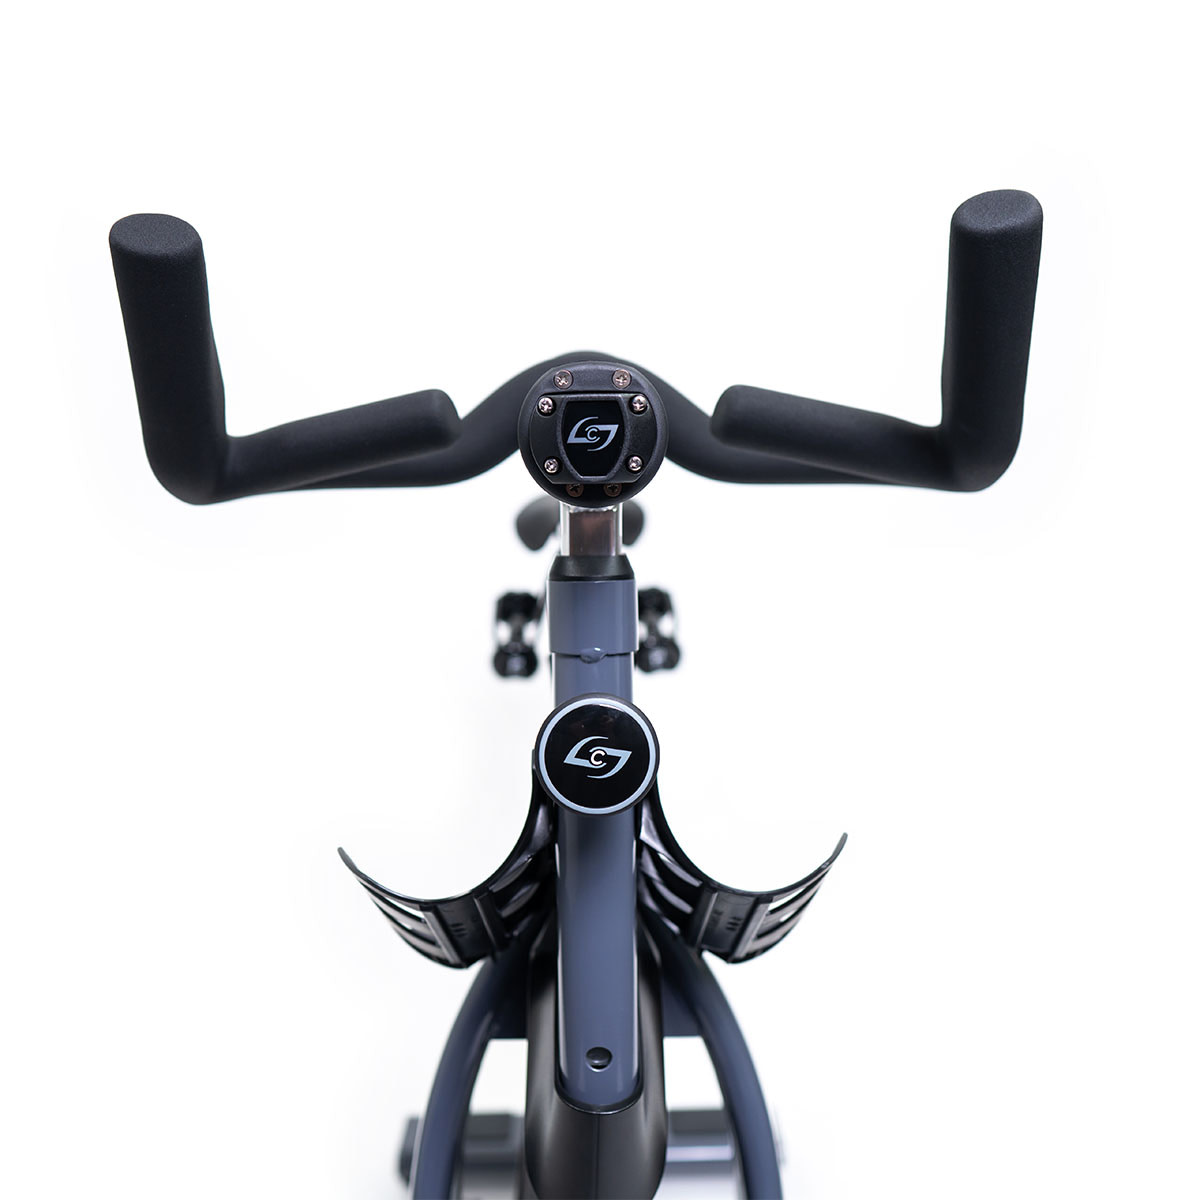 Stages SC1 Indoor Cycle Handlebar Adjustment Knob